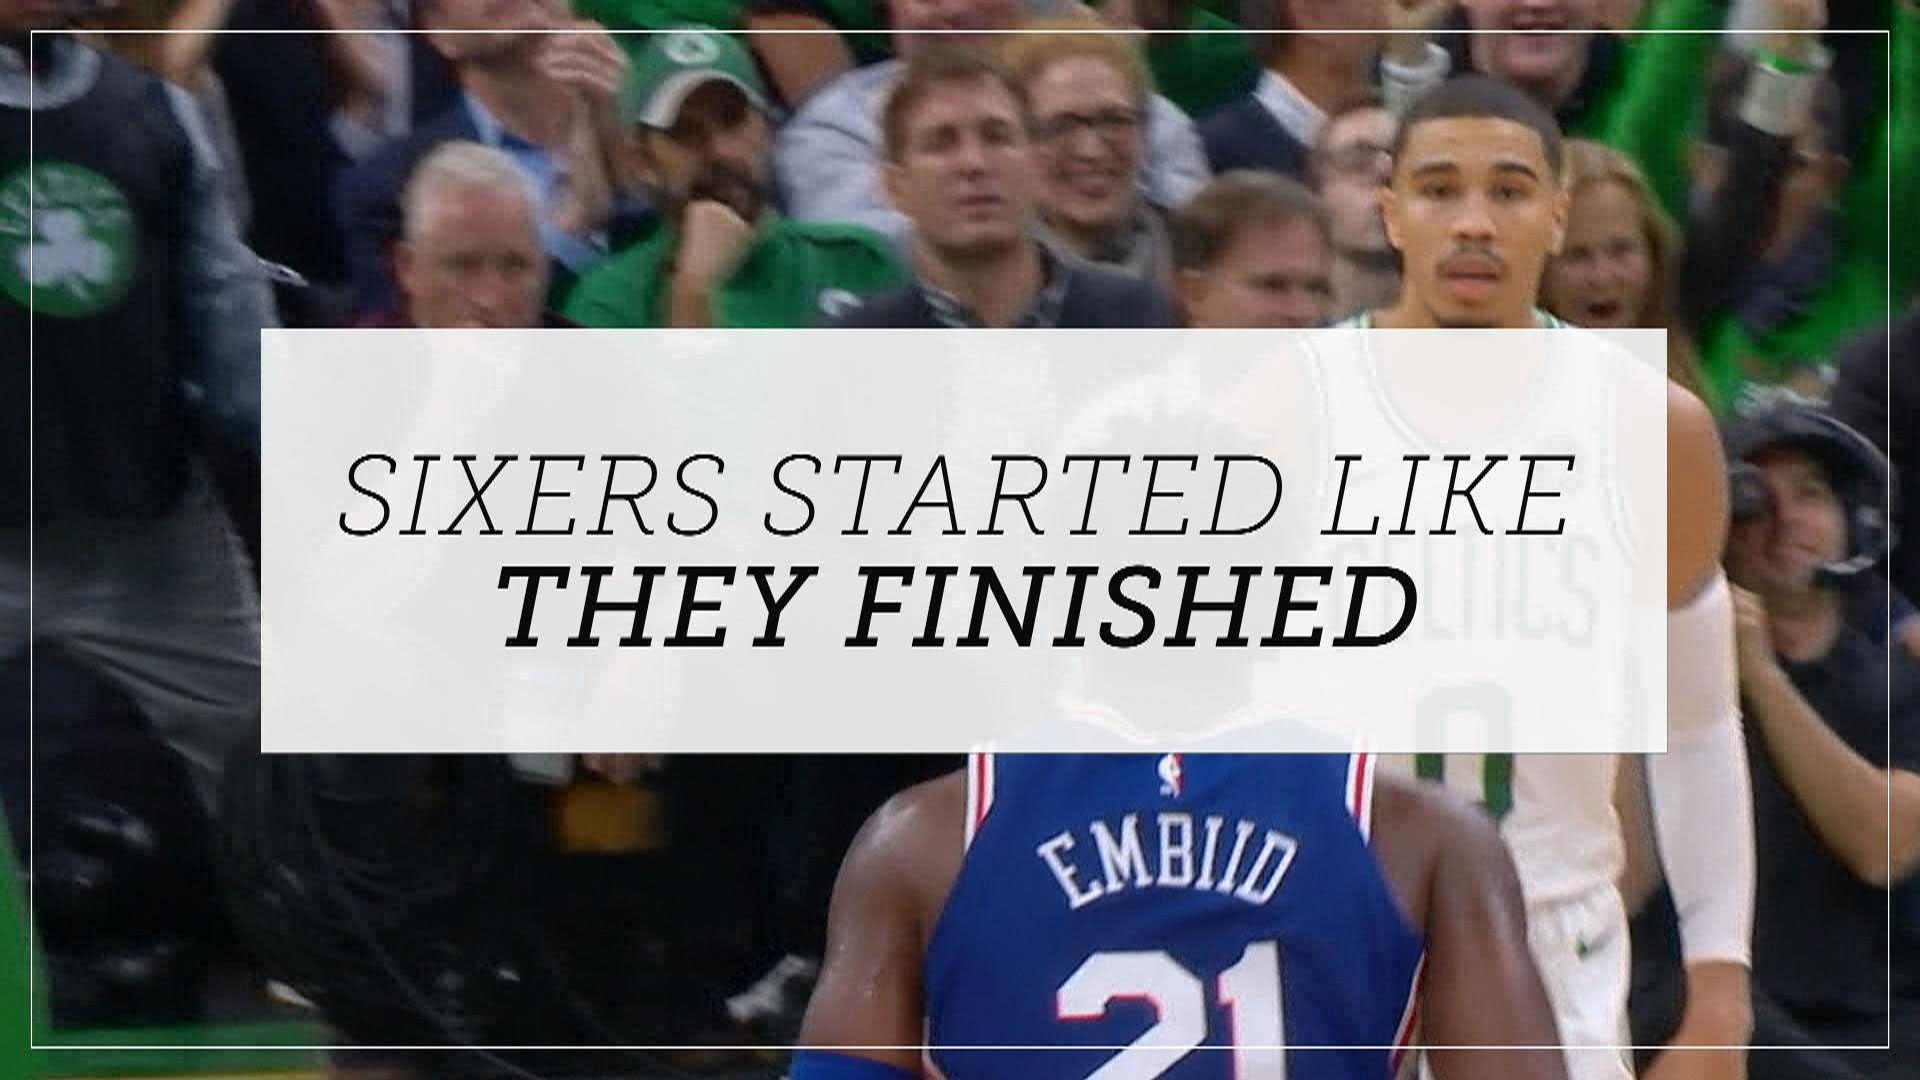 What went wrong for the Sixers in their home-opener against the Celtics?